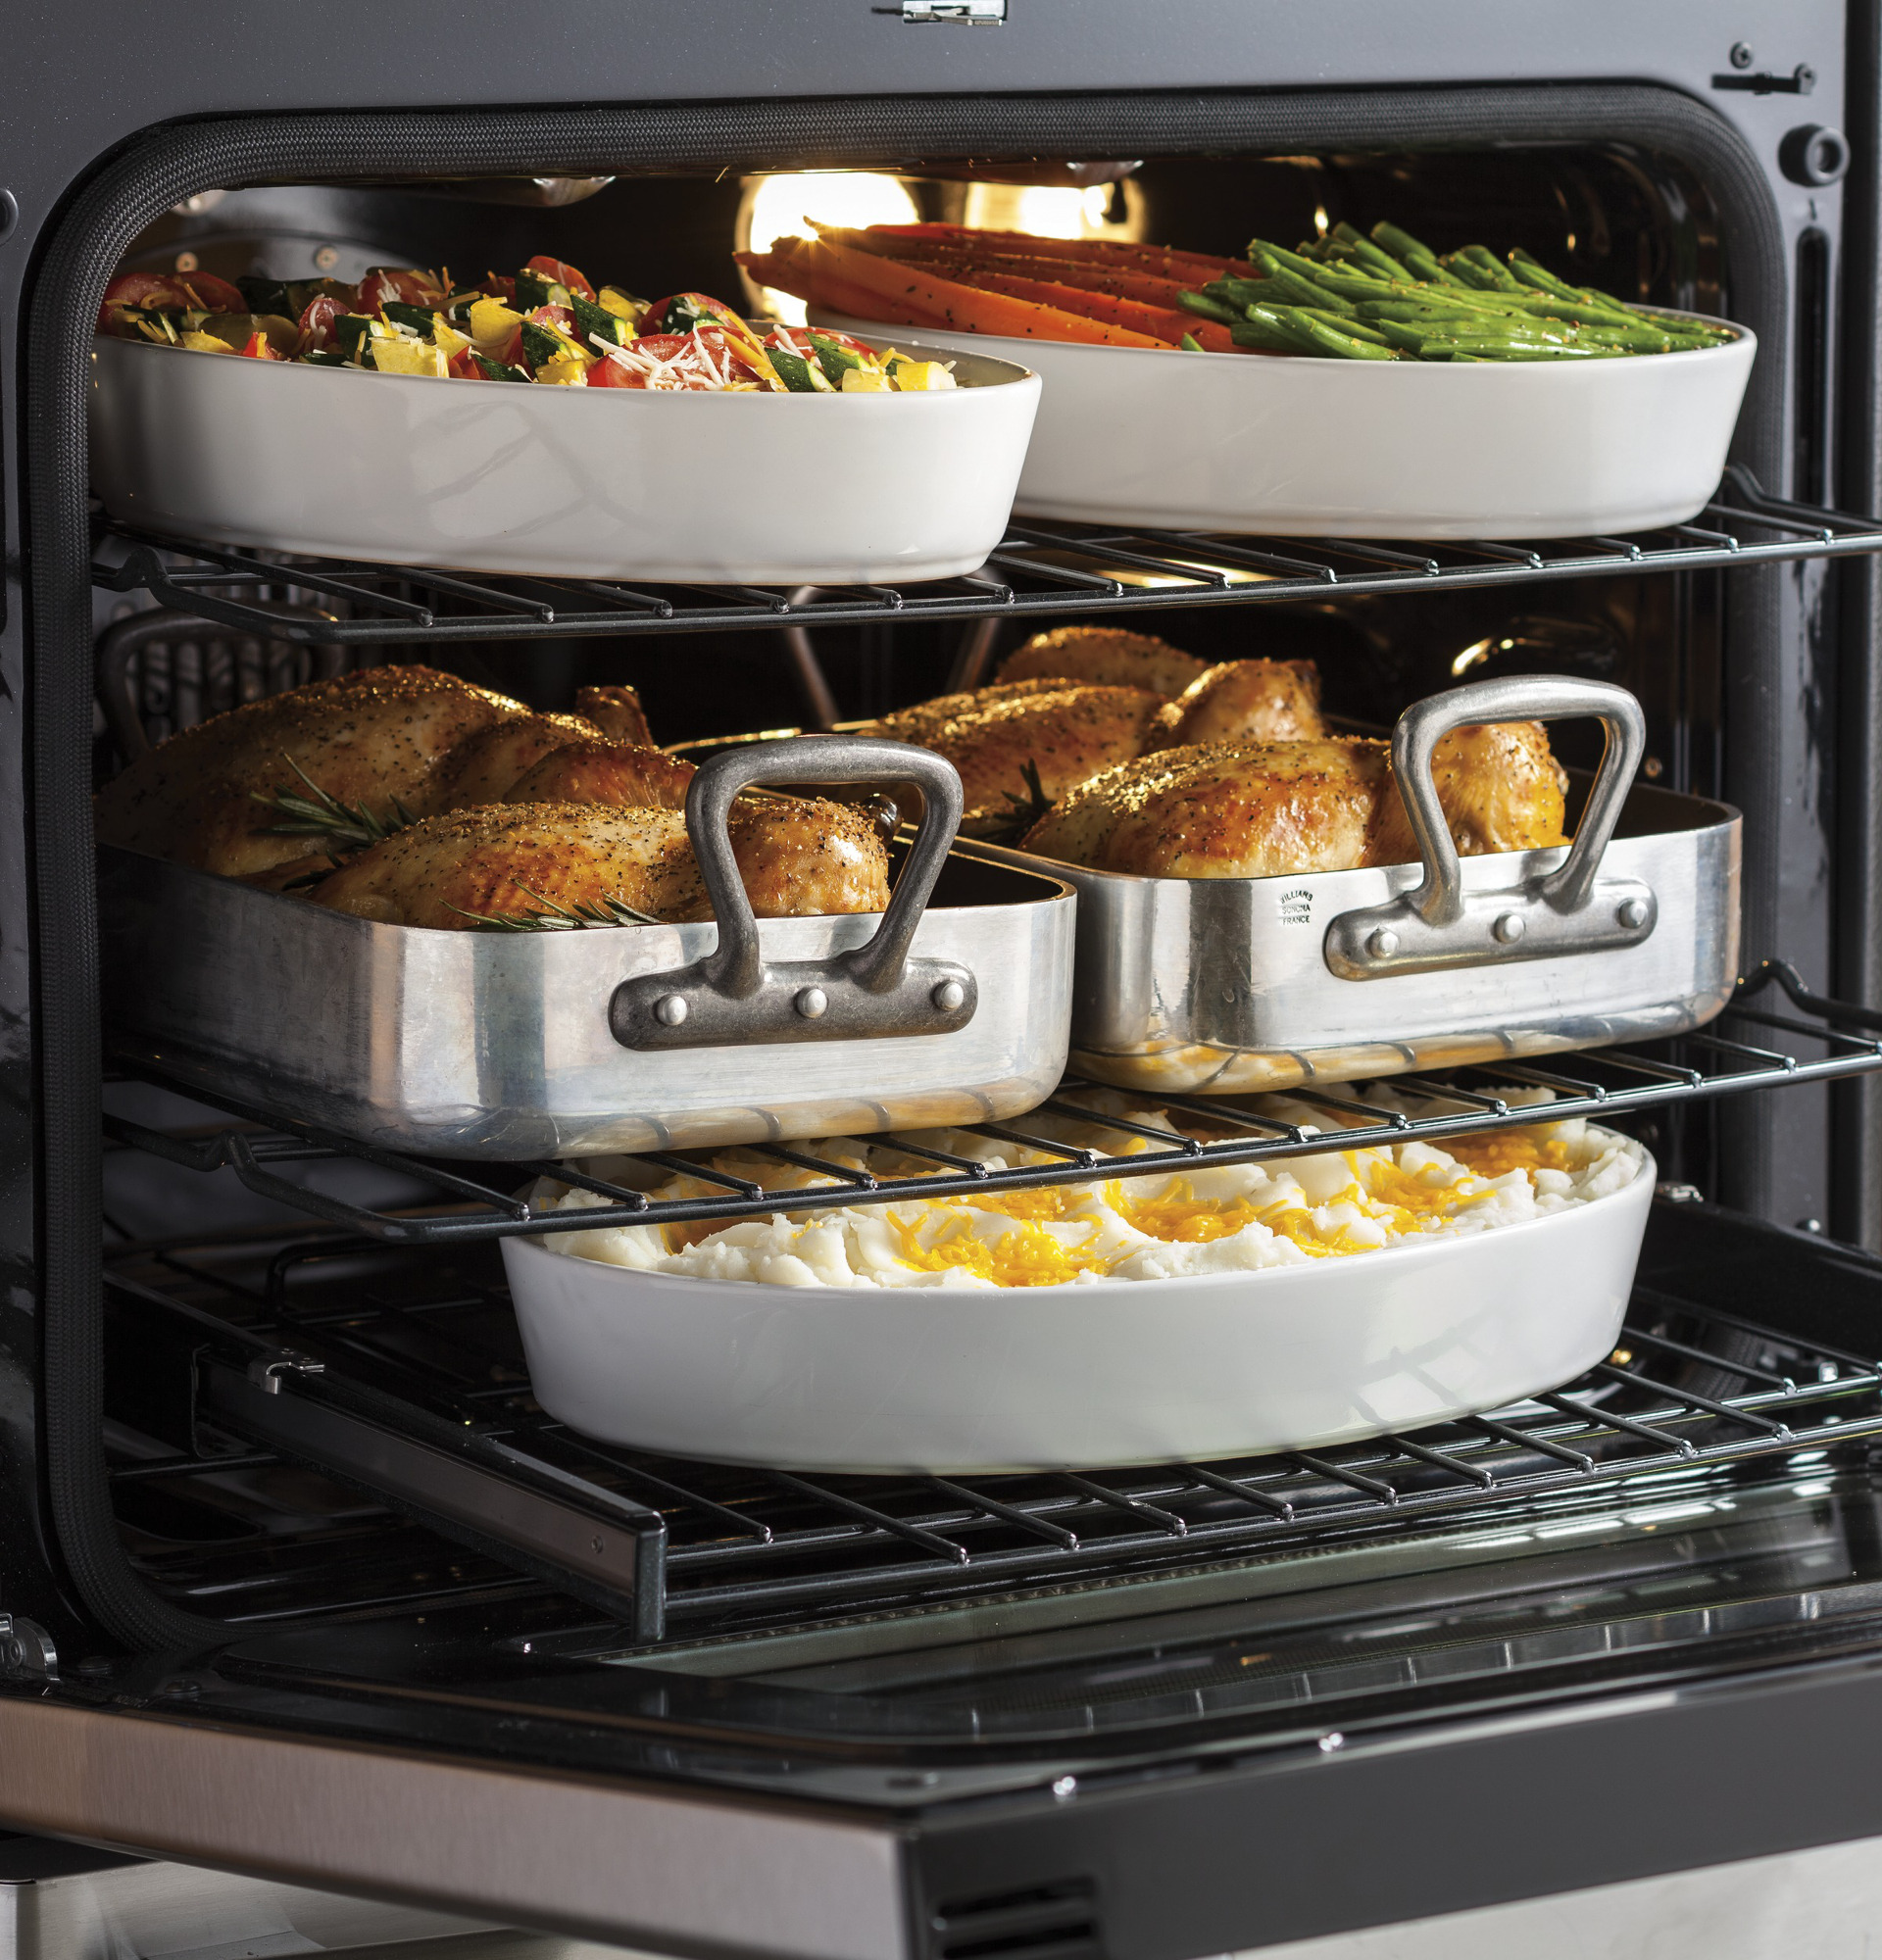 GE Profile PGB940SEJSS 5.6 cu. ft. Freestanding Gas Convection Range - Stainless Steel